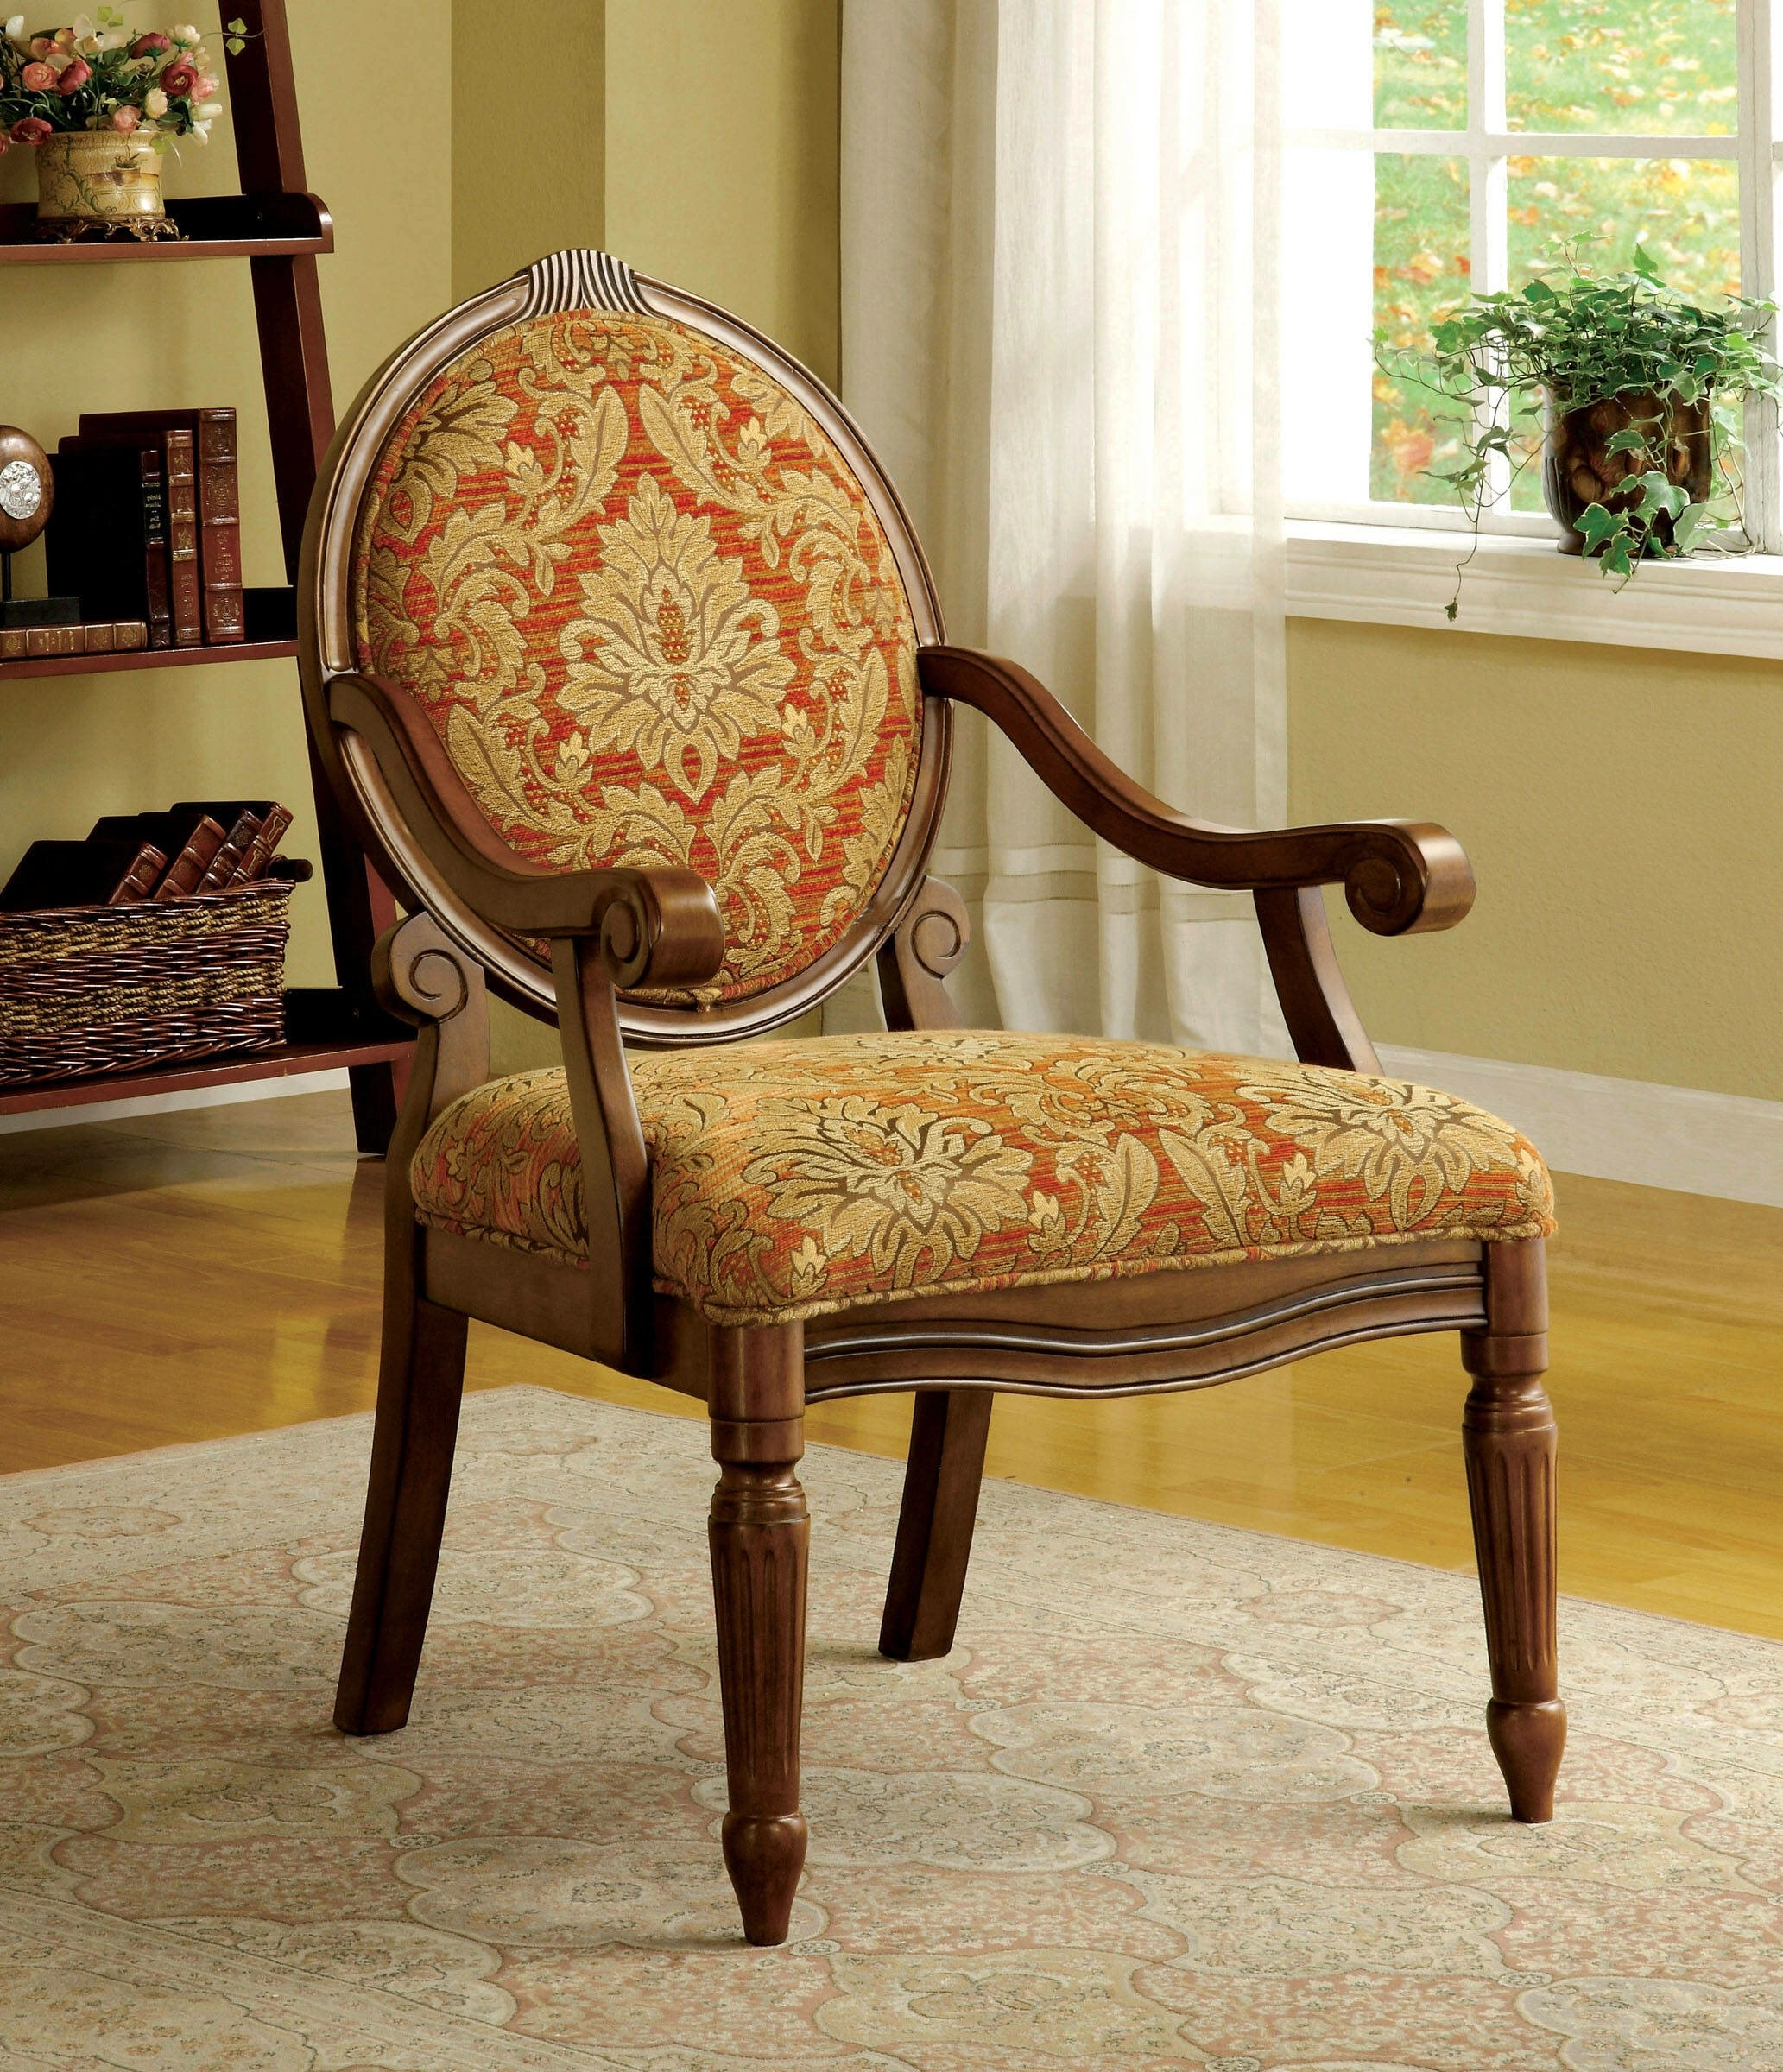 antique living room chair styles plastic material chairs ideas on foter hammond accent in espresso oak finish by furniture of america cm